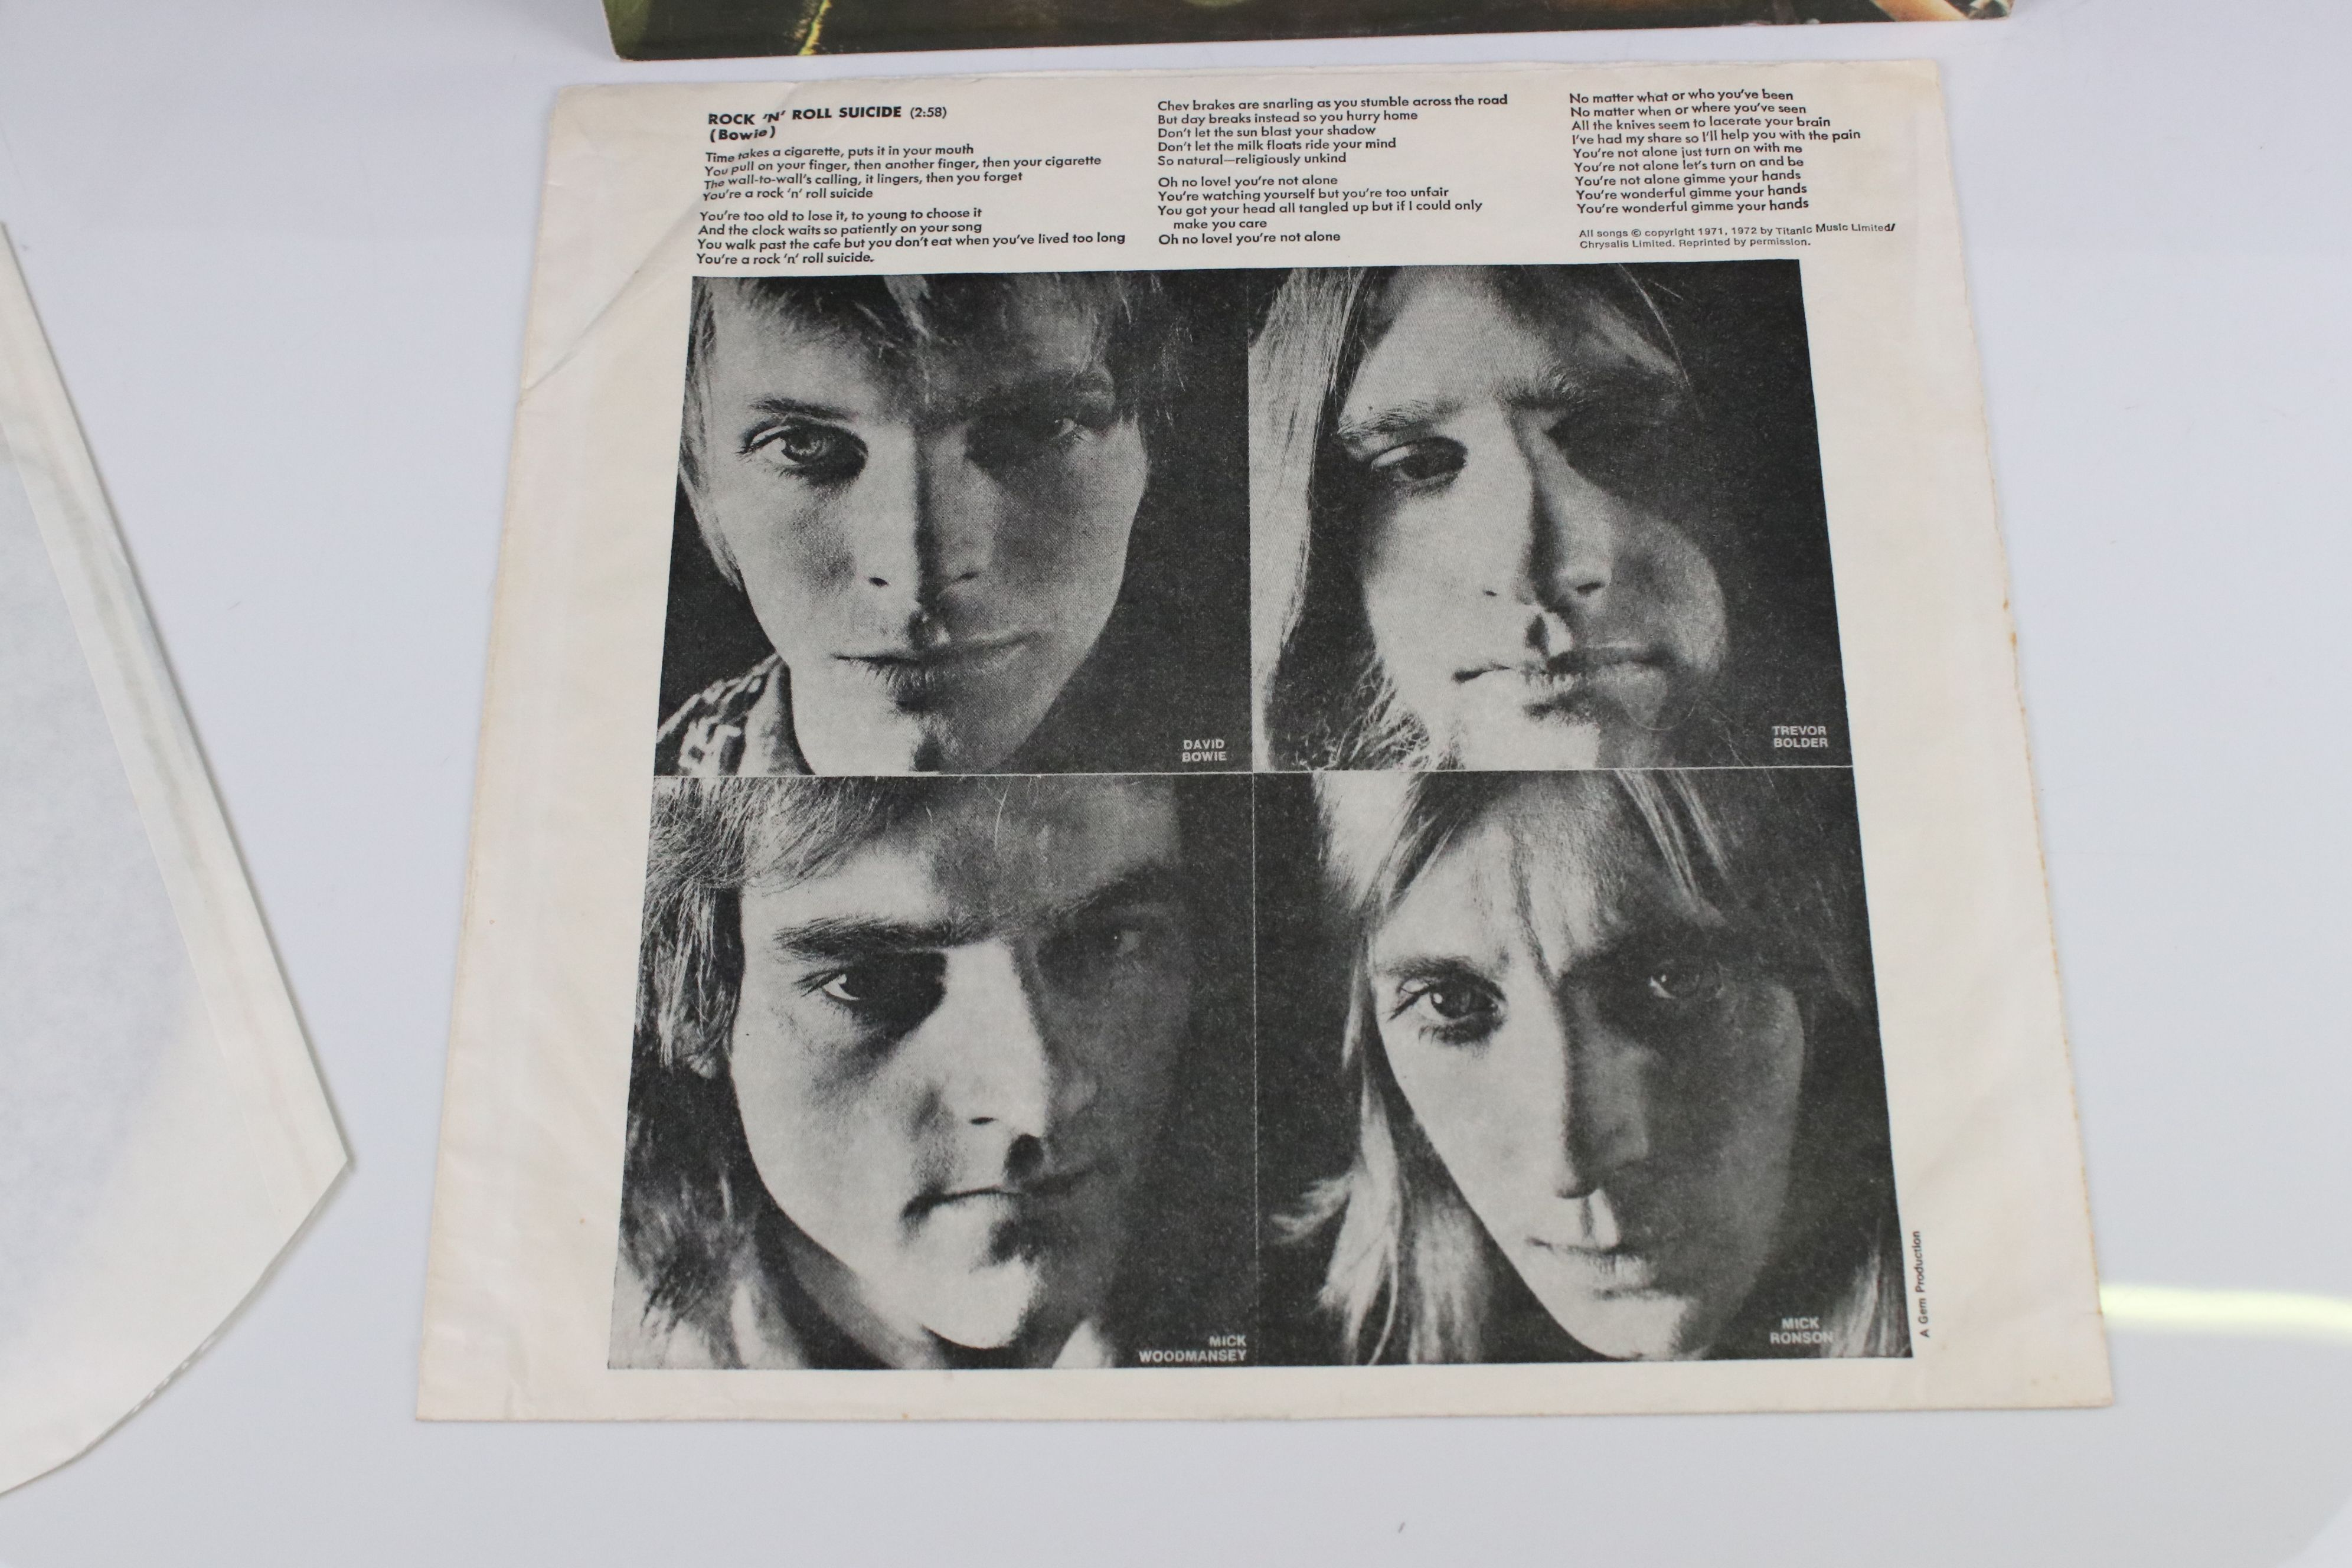 Vinyl - David Bowie The Rise and Fall of Ziggy Stardust LP on RCA8287, shiny orange RCA label, - Image 4 of 7